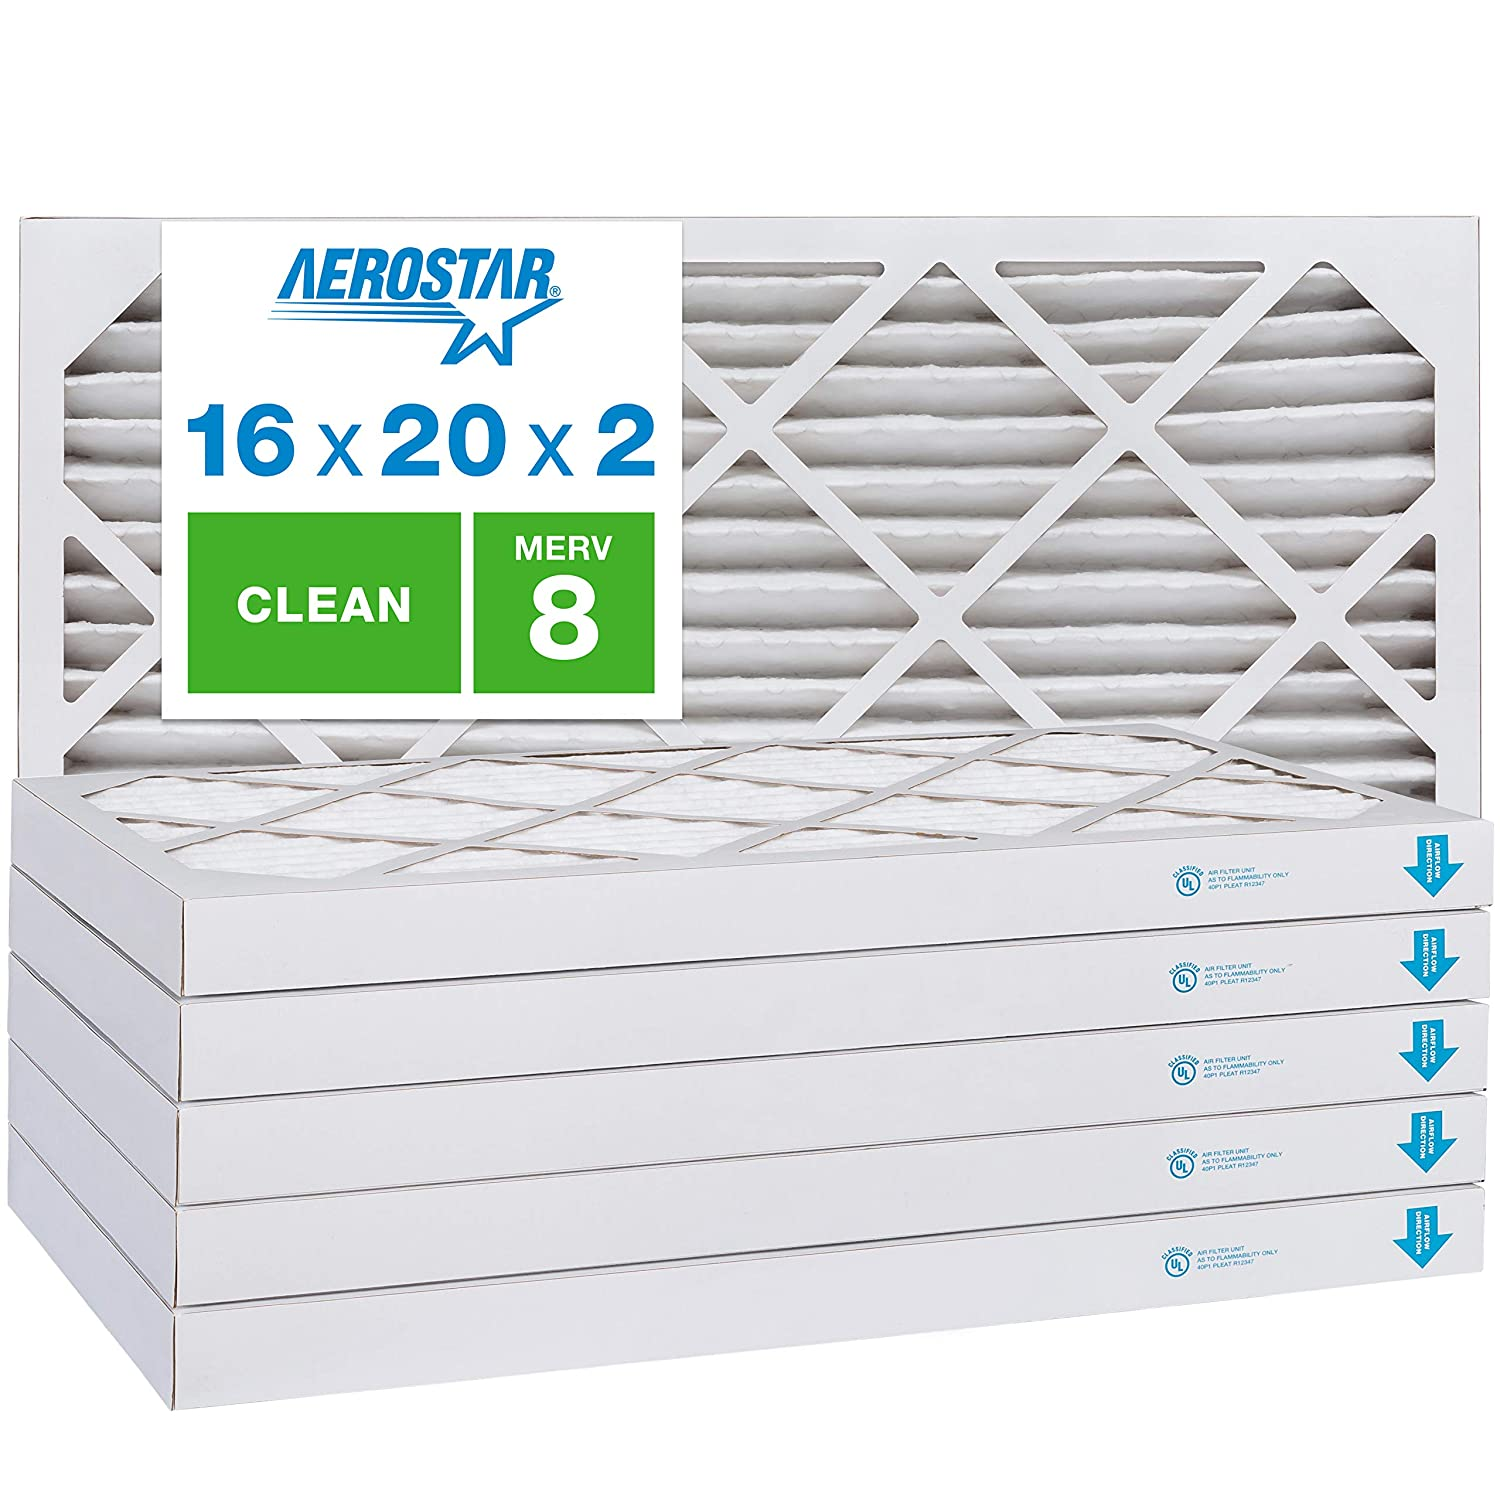 "Aerostar Clean House 16x20x2 MERV 8 Pleated Air Filter, Made in the USA, (Actual Size: 15 1/2""x19 1/2""x1 3/4""), 6-Pack, White"